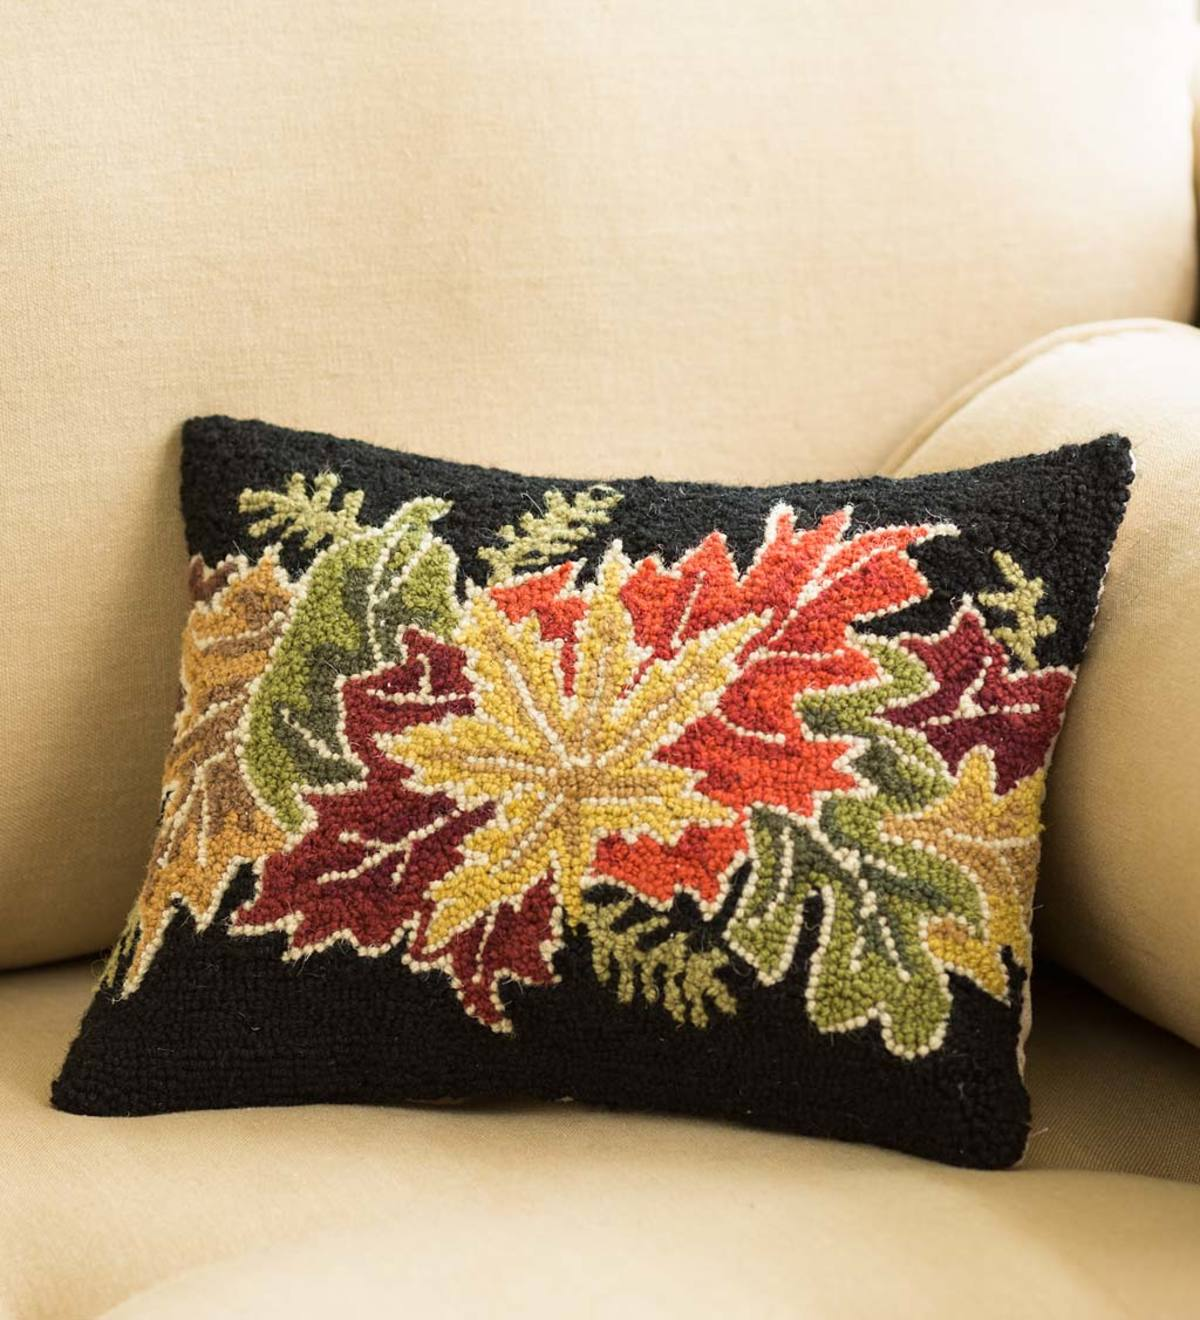 Hand-Hooked Wool Fall Leaves Pillow